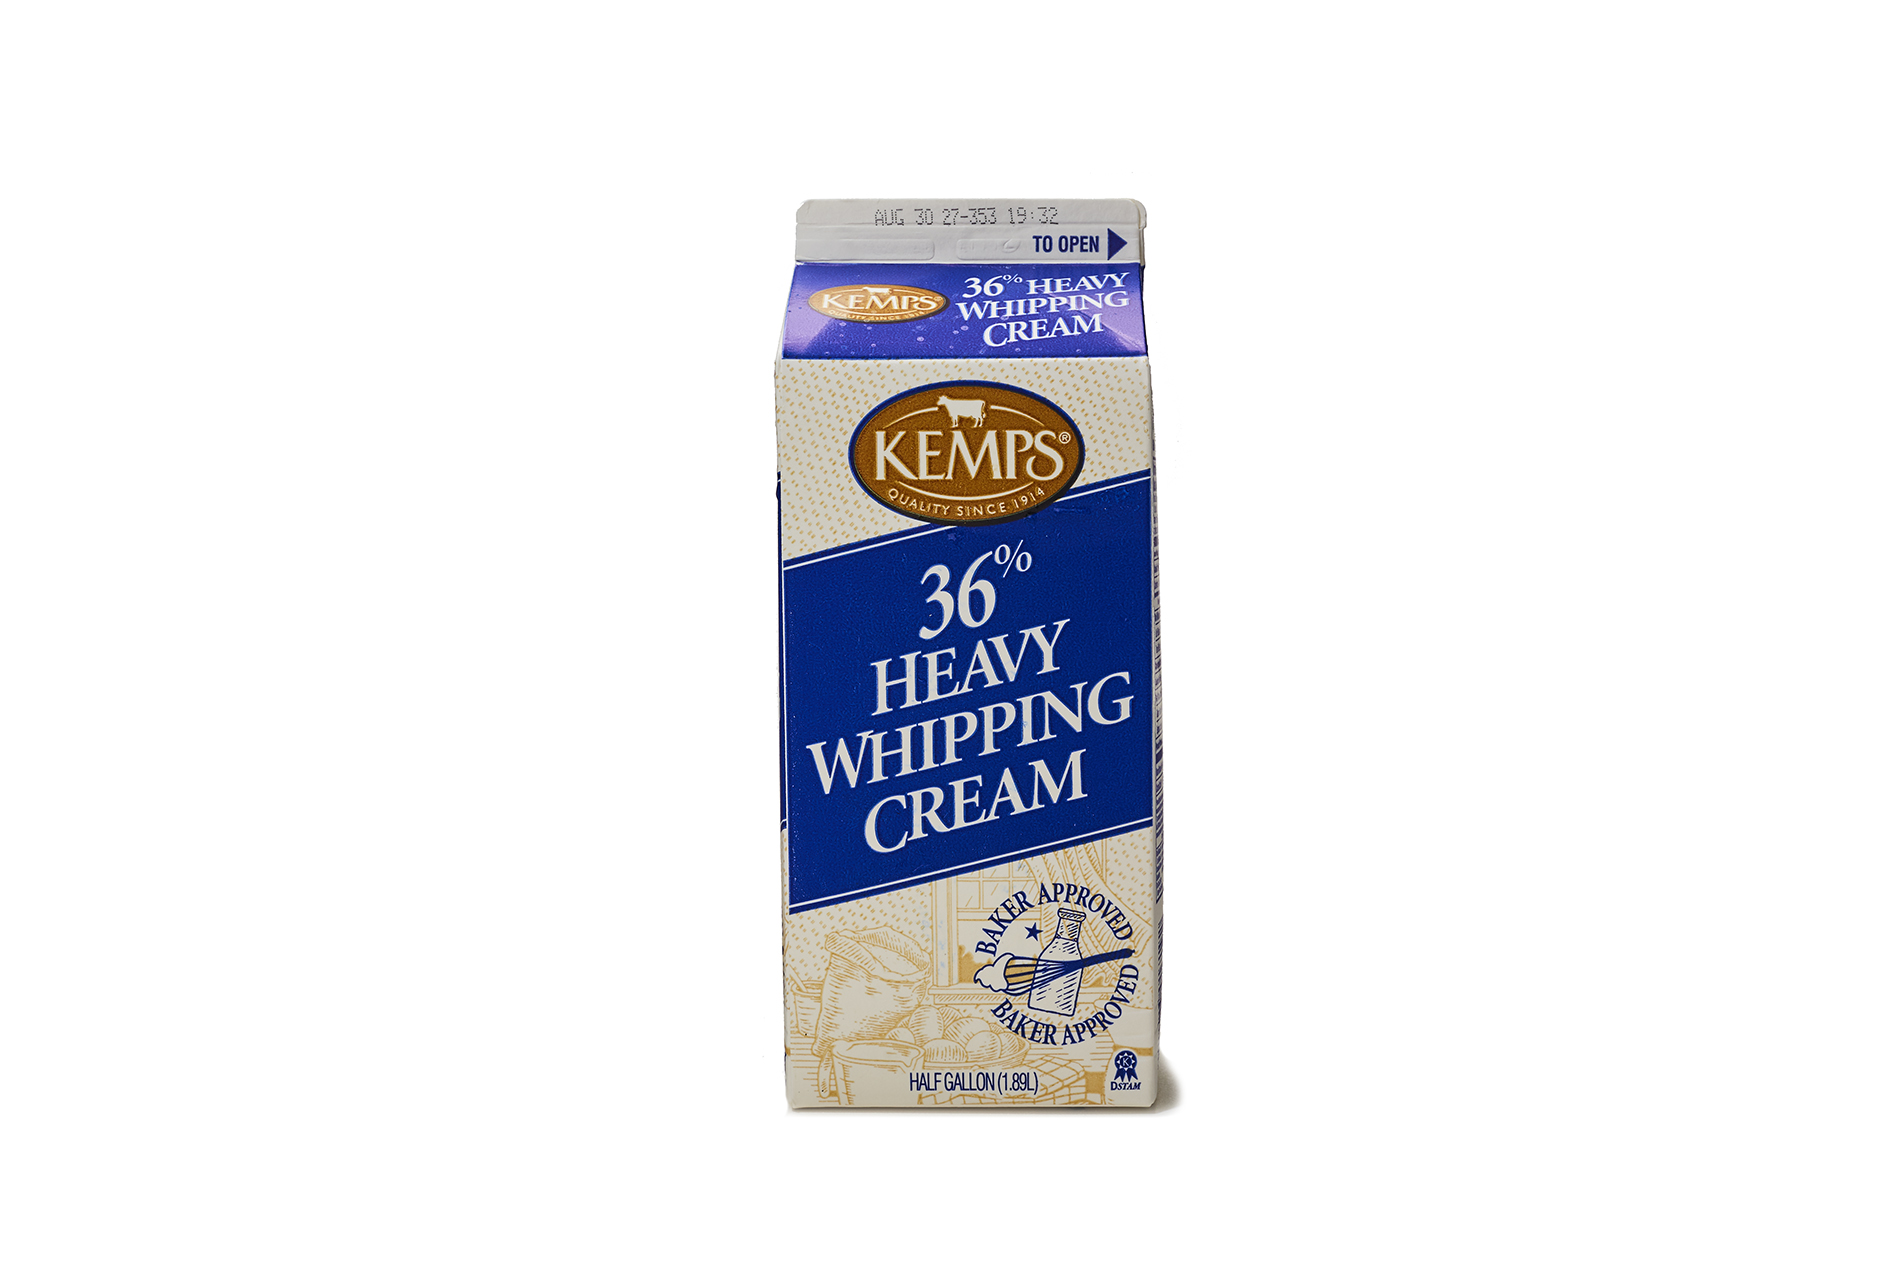 Kemps Heavy Whipping Cream